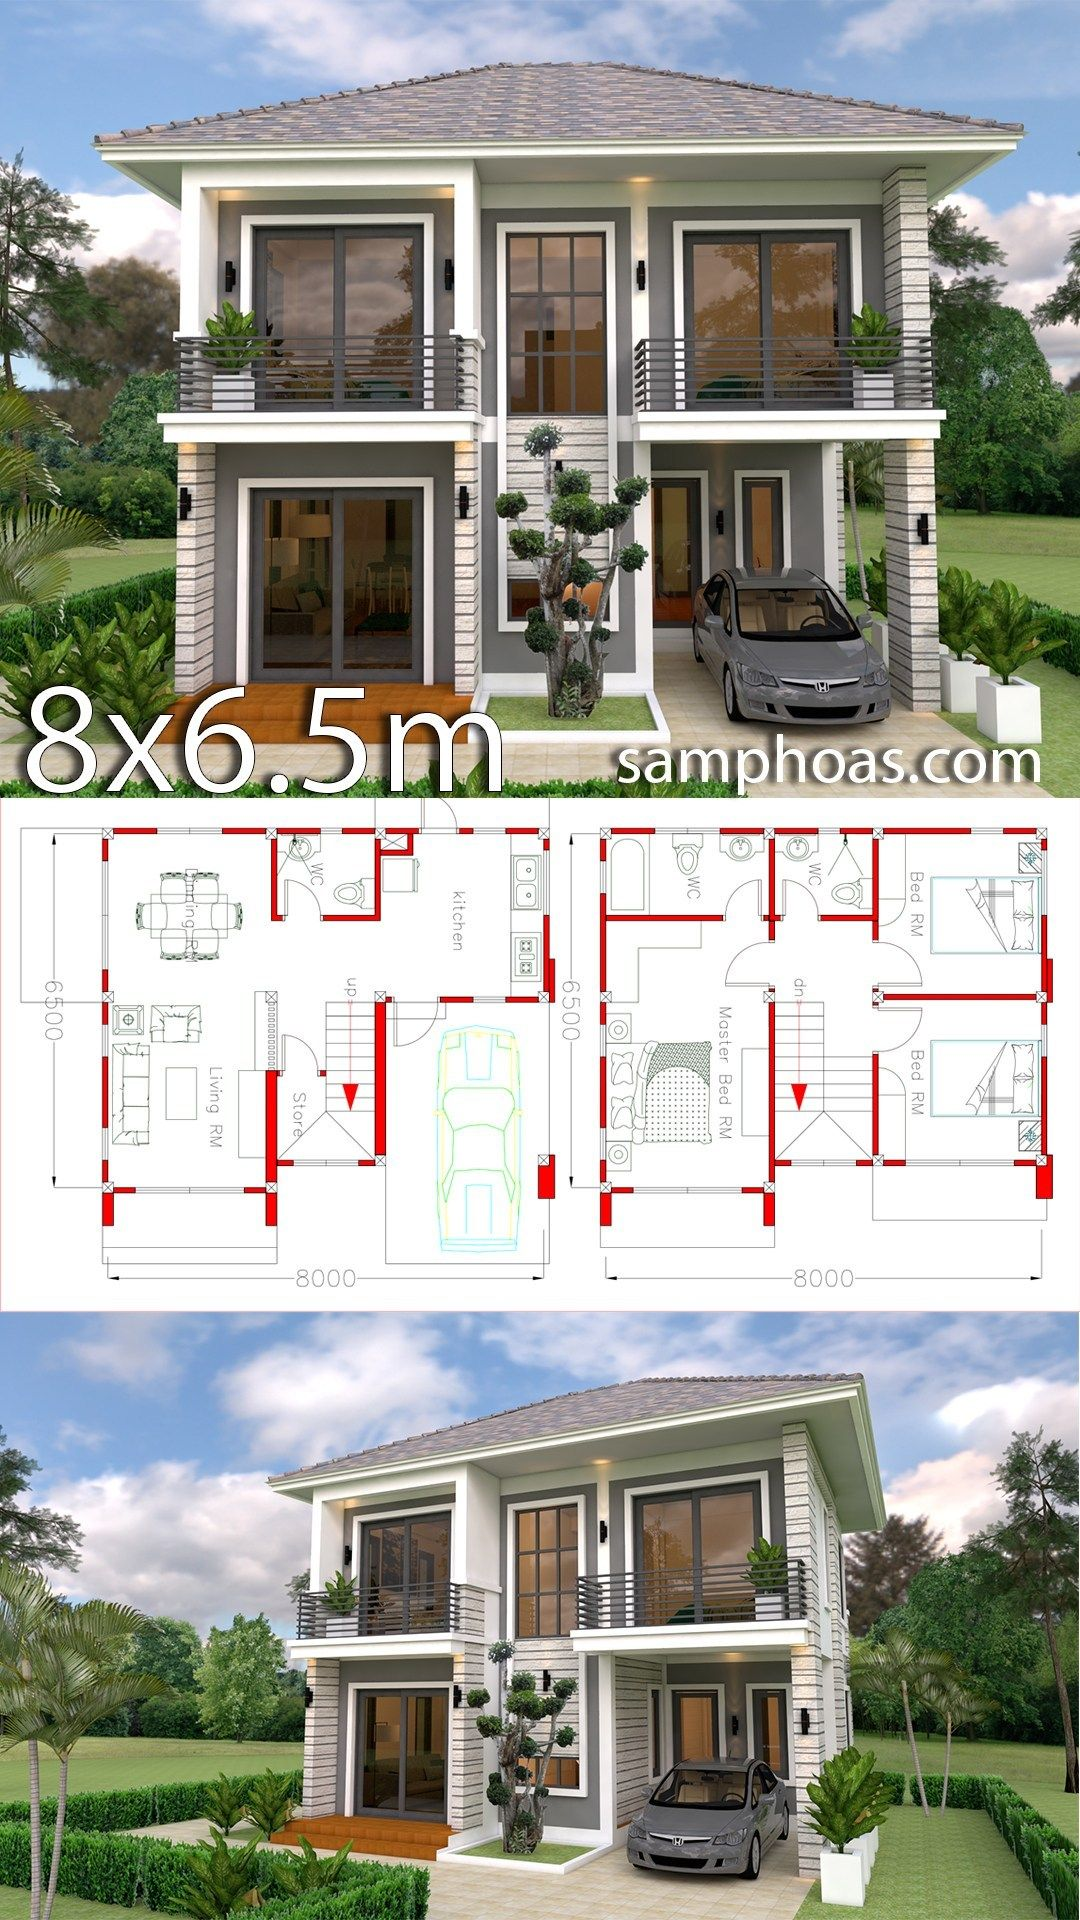 Home Design Plan 8x6 5m With 3 Bedrooms Samphoas Plansearch Model House Plan Simple House Design Sims House Plans